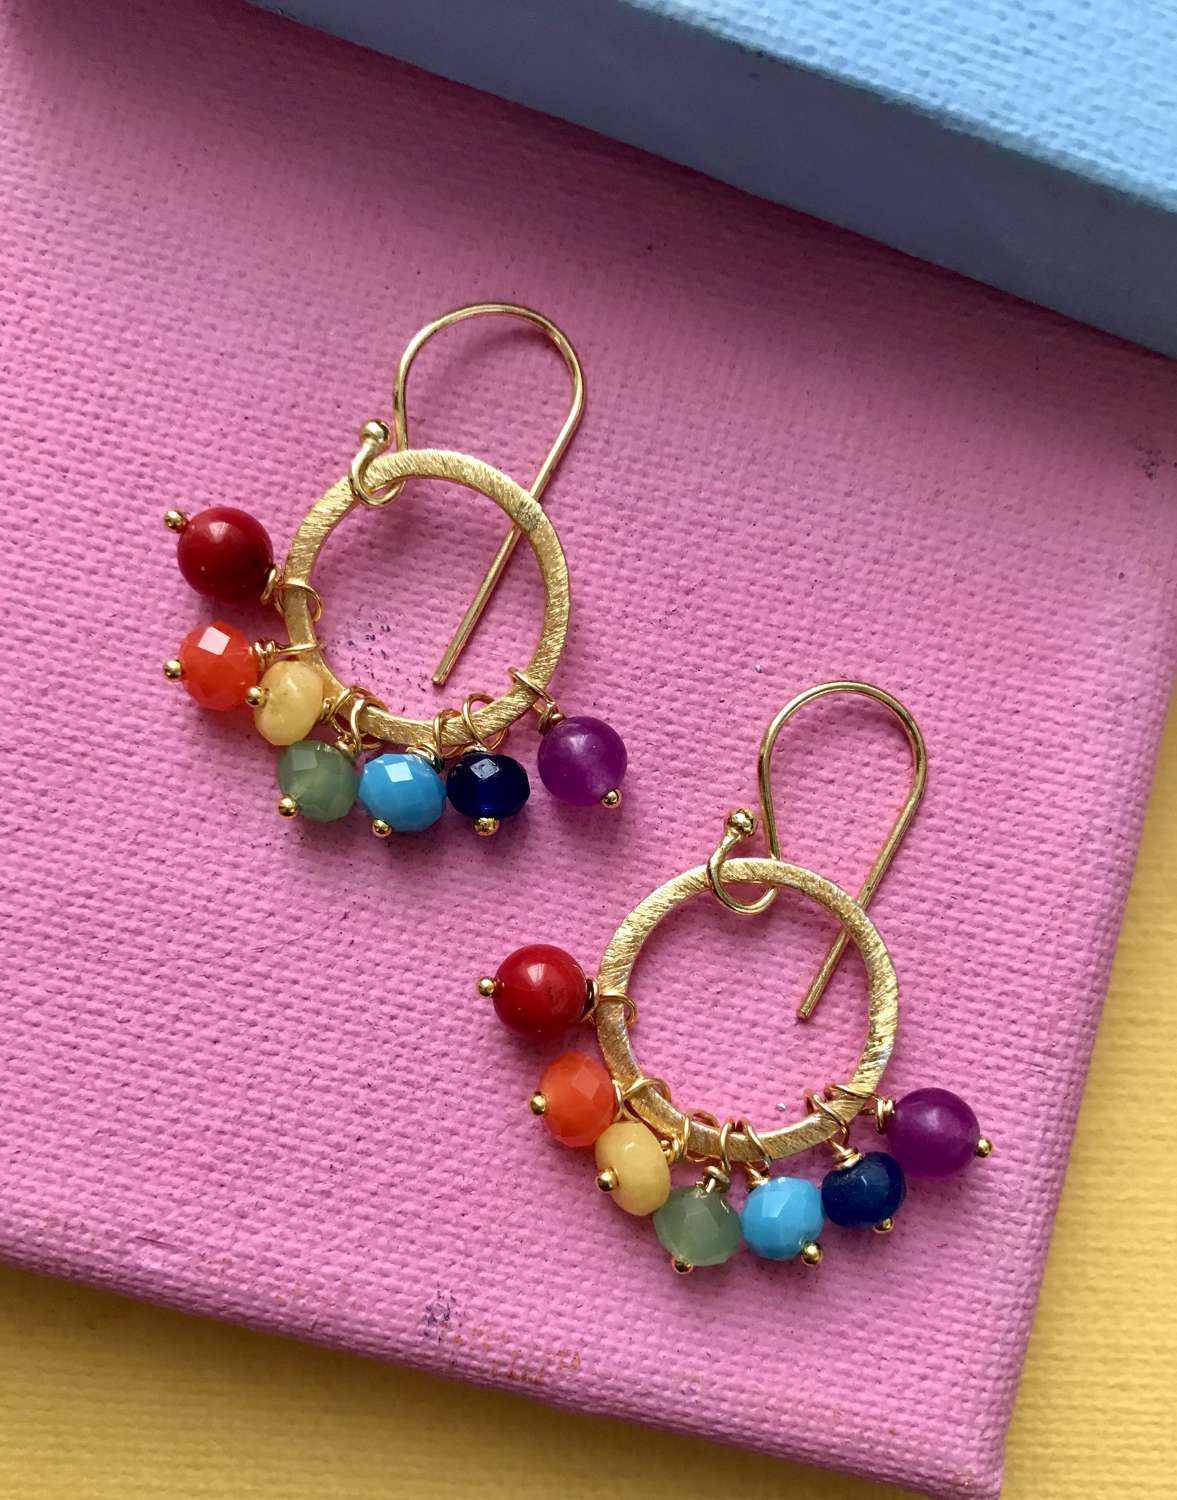 Rainbow earrings in gold